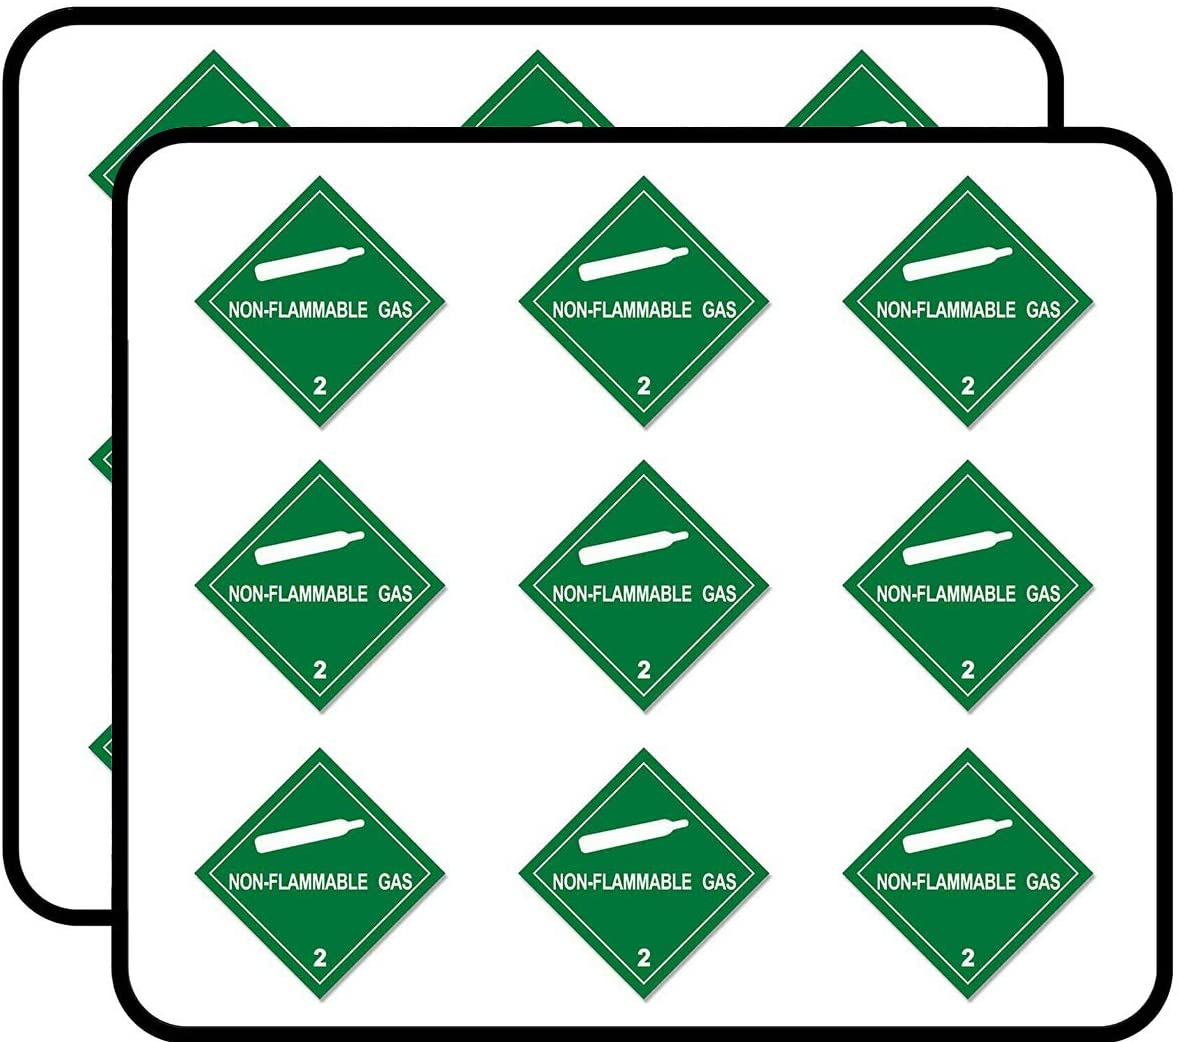 Green Diamond Non Flammable Gas 2 (Business Safety Safe) Sticker for Scrapbooking, Calendars, Arts, Album, Bullet Journals 2